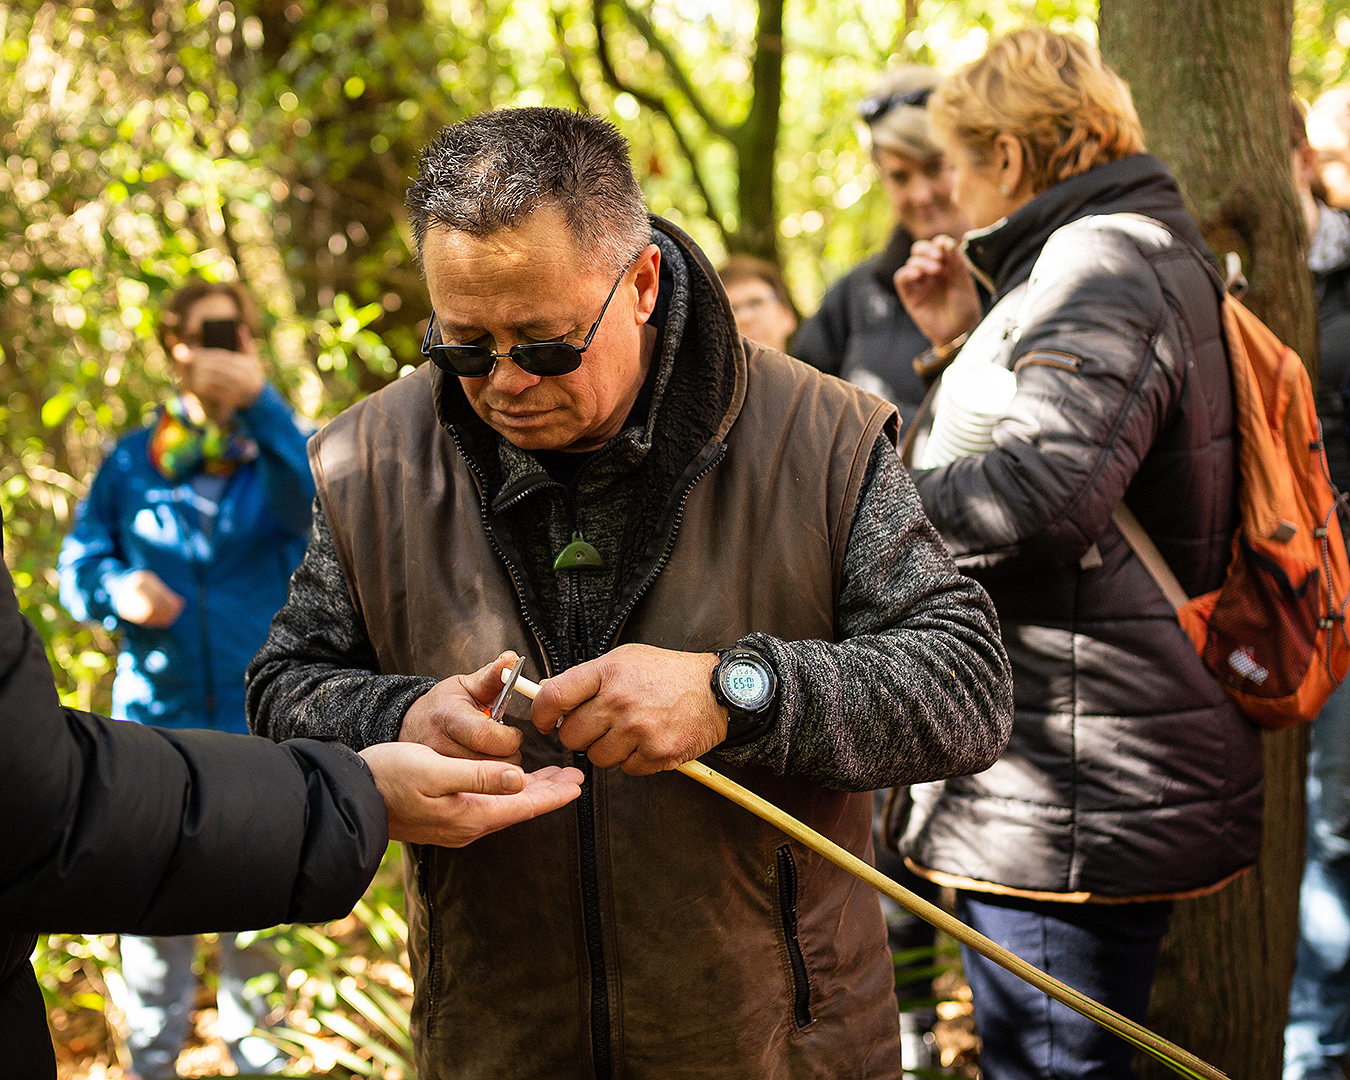 A man teaches foraging in the forest.